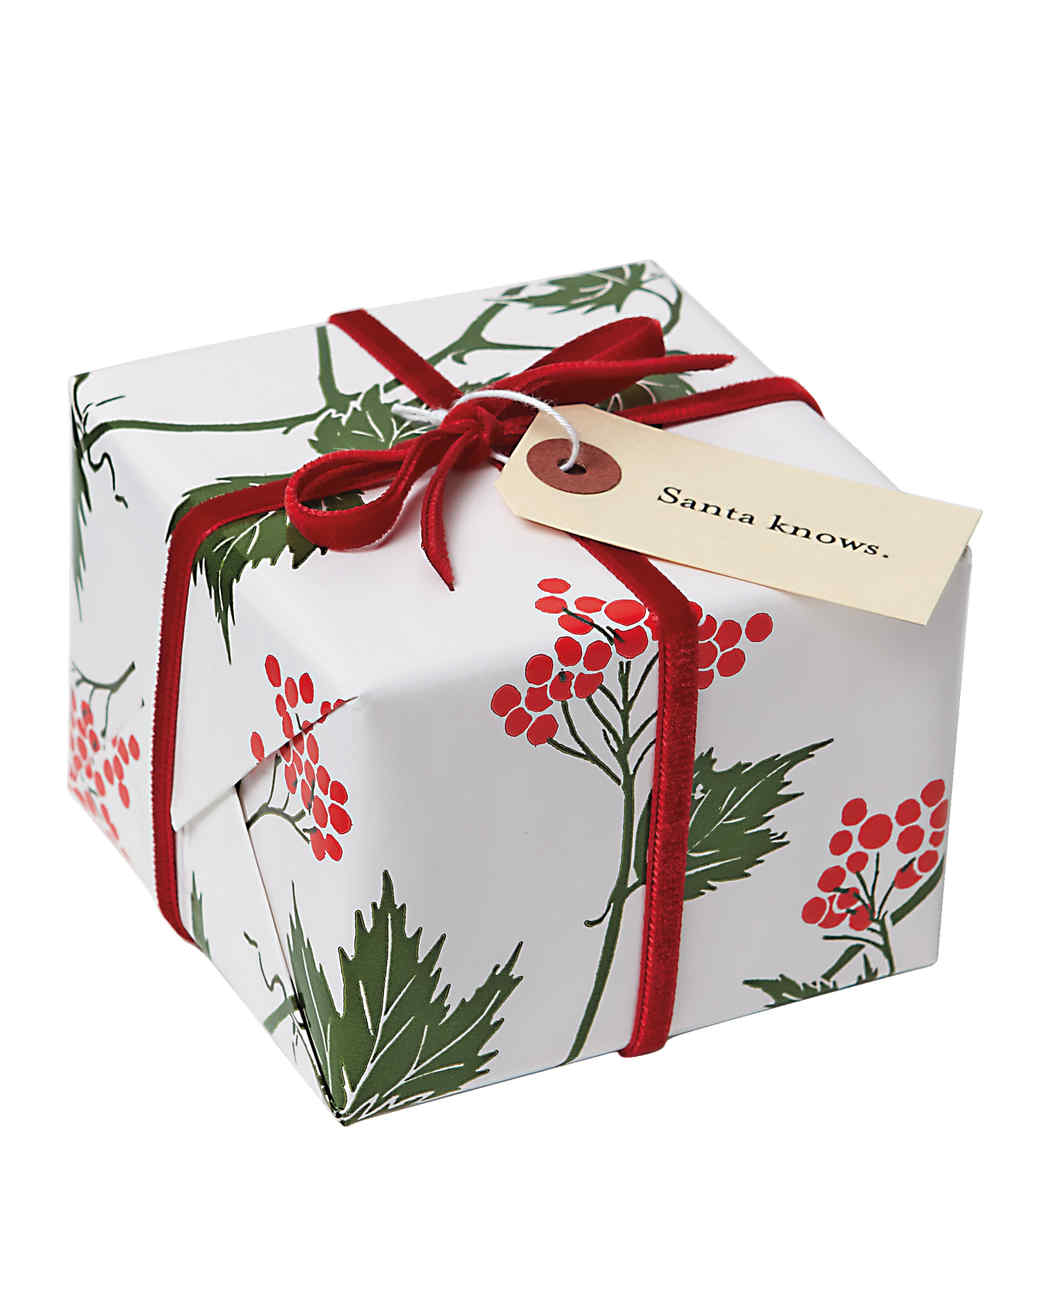 wrapped-gift-070-r-mld110571.jpg